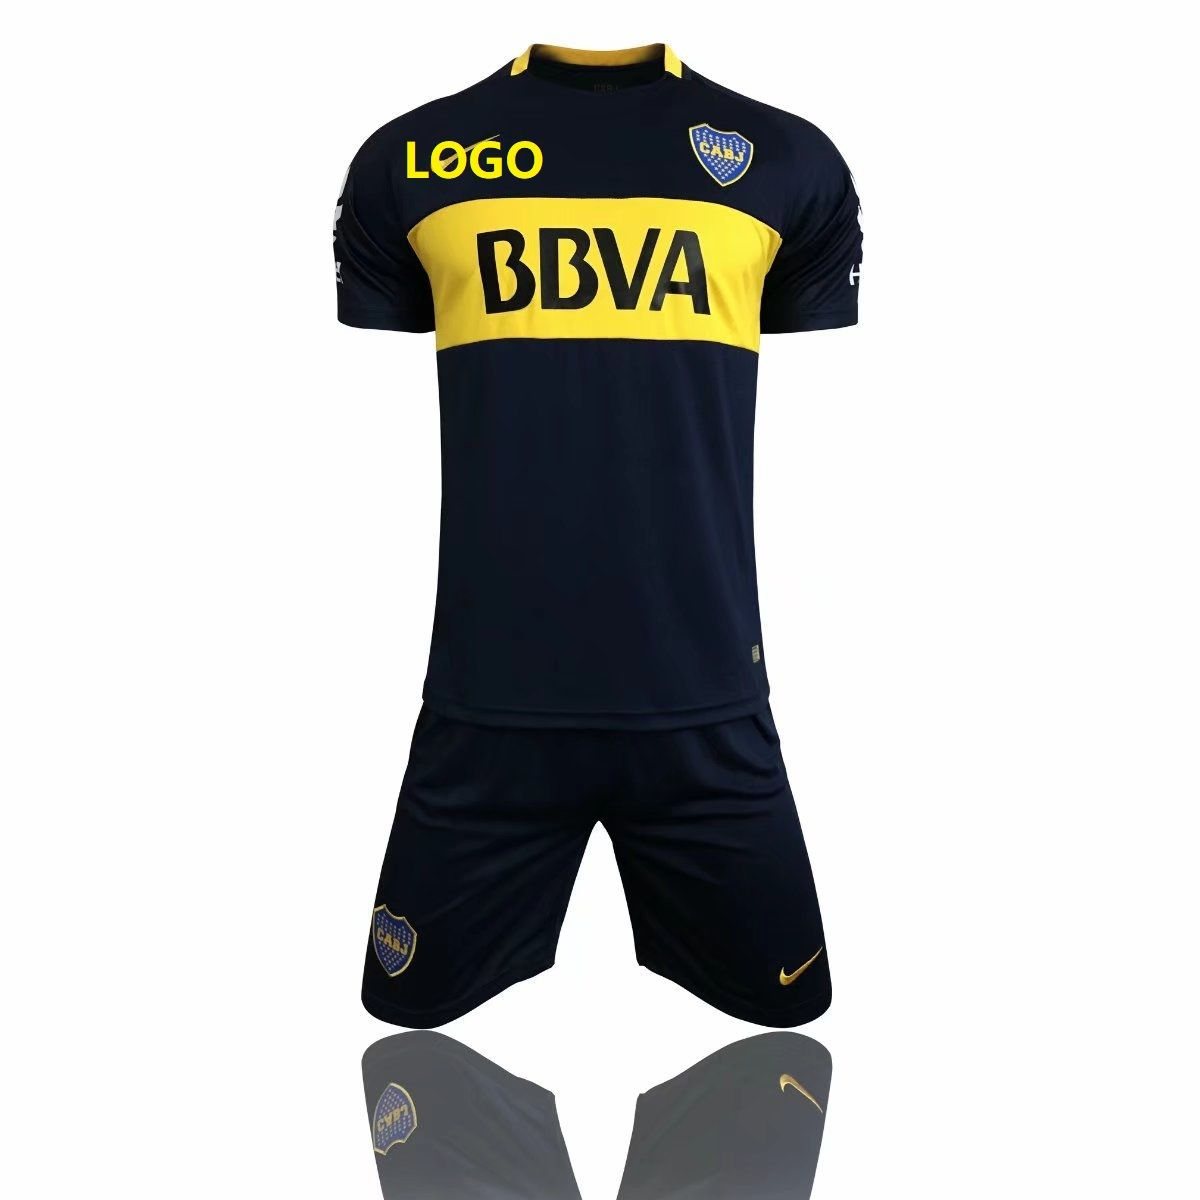 4a72bd87f40 17 18 Adult Club Atlético Boca Juniors Soccer Jersey Uniforms Men Cheap  Football Kits Wholesale